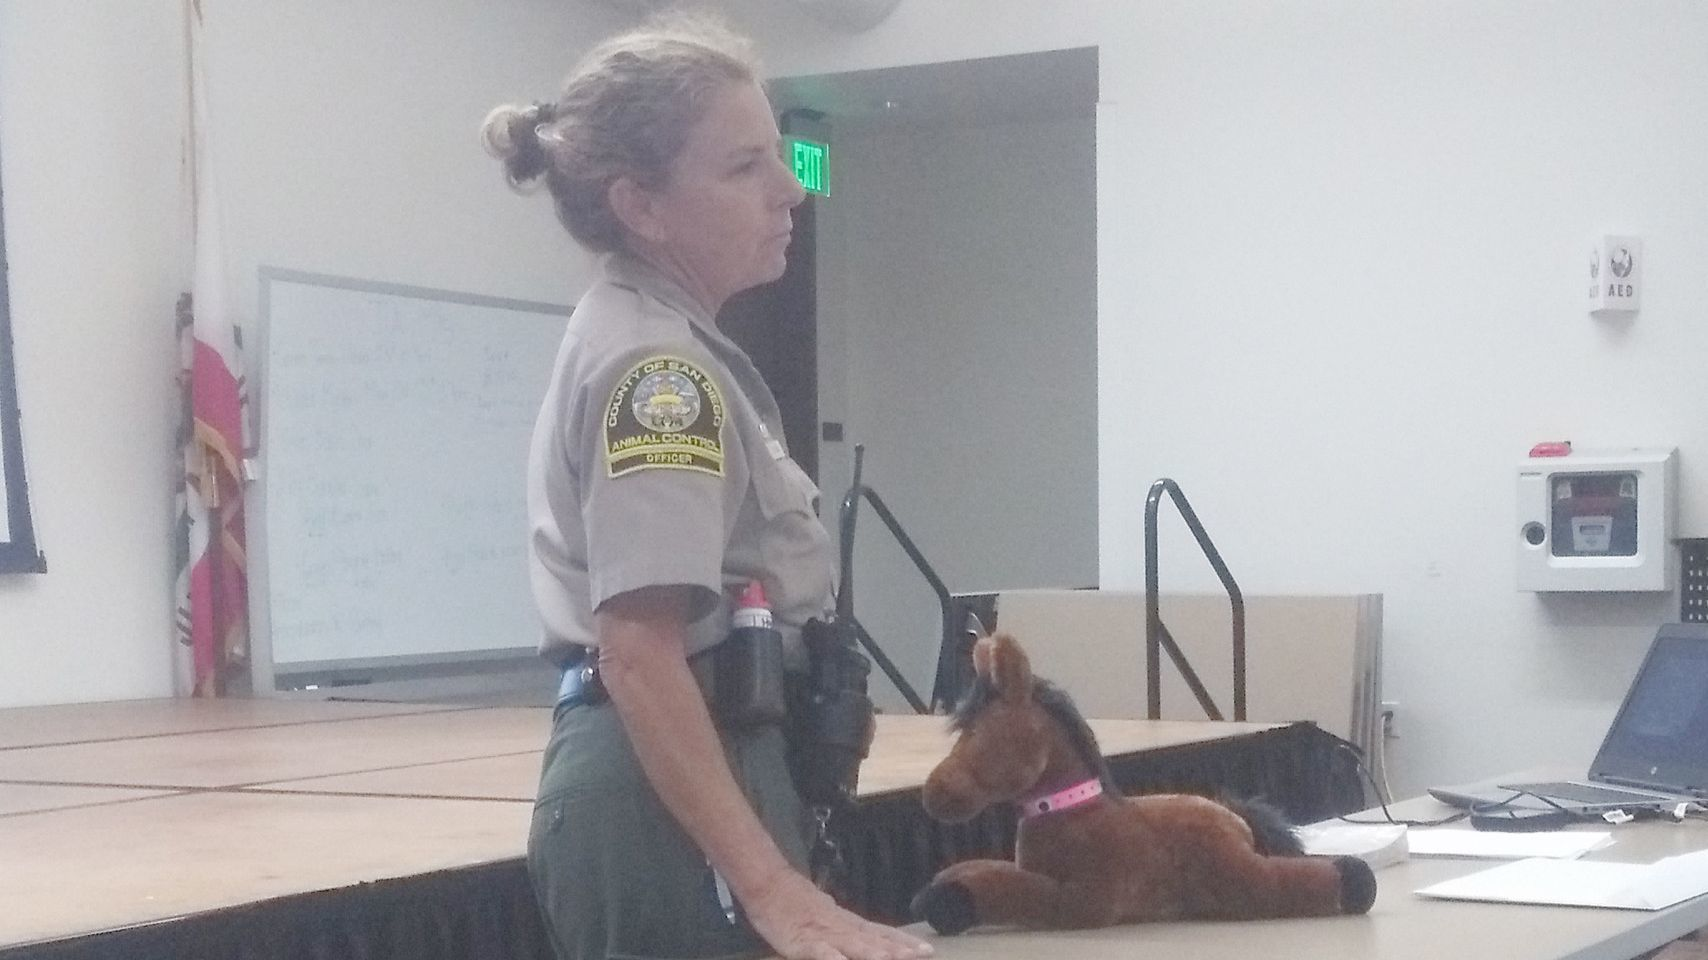 San Diego County Animal Services Officer DJ Gove suggests animal owners get microchips for their large and small animals so emergency responders can digitally access their IDs.